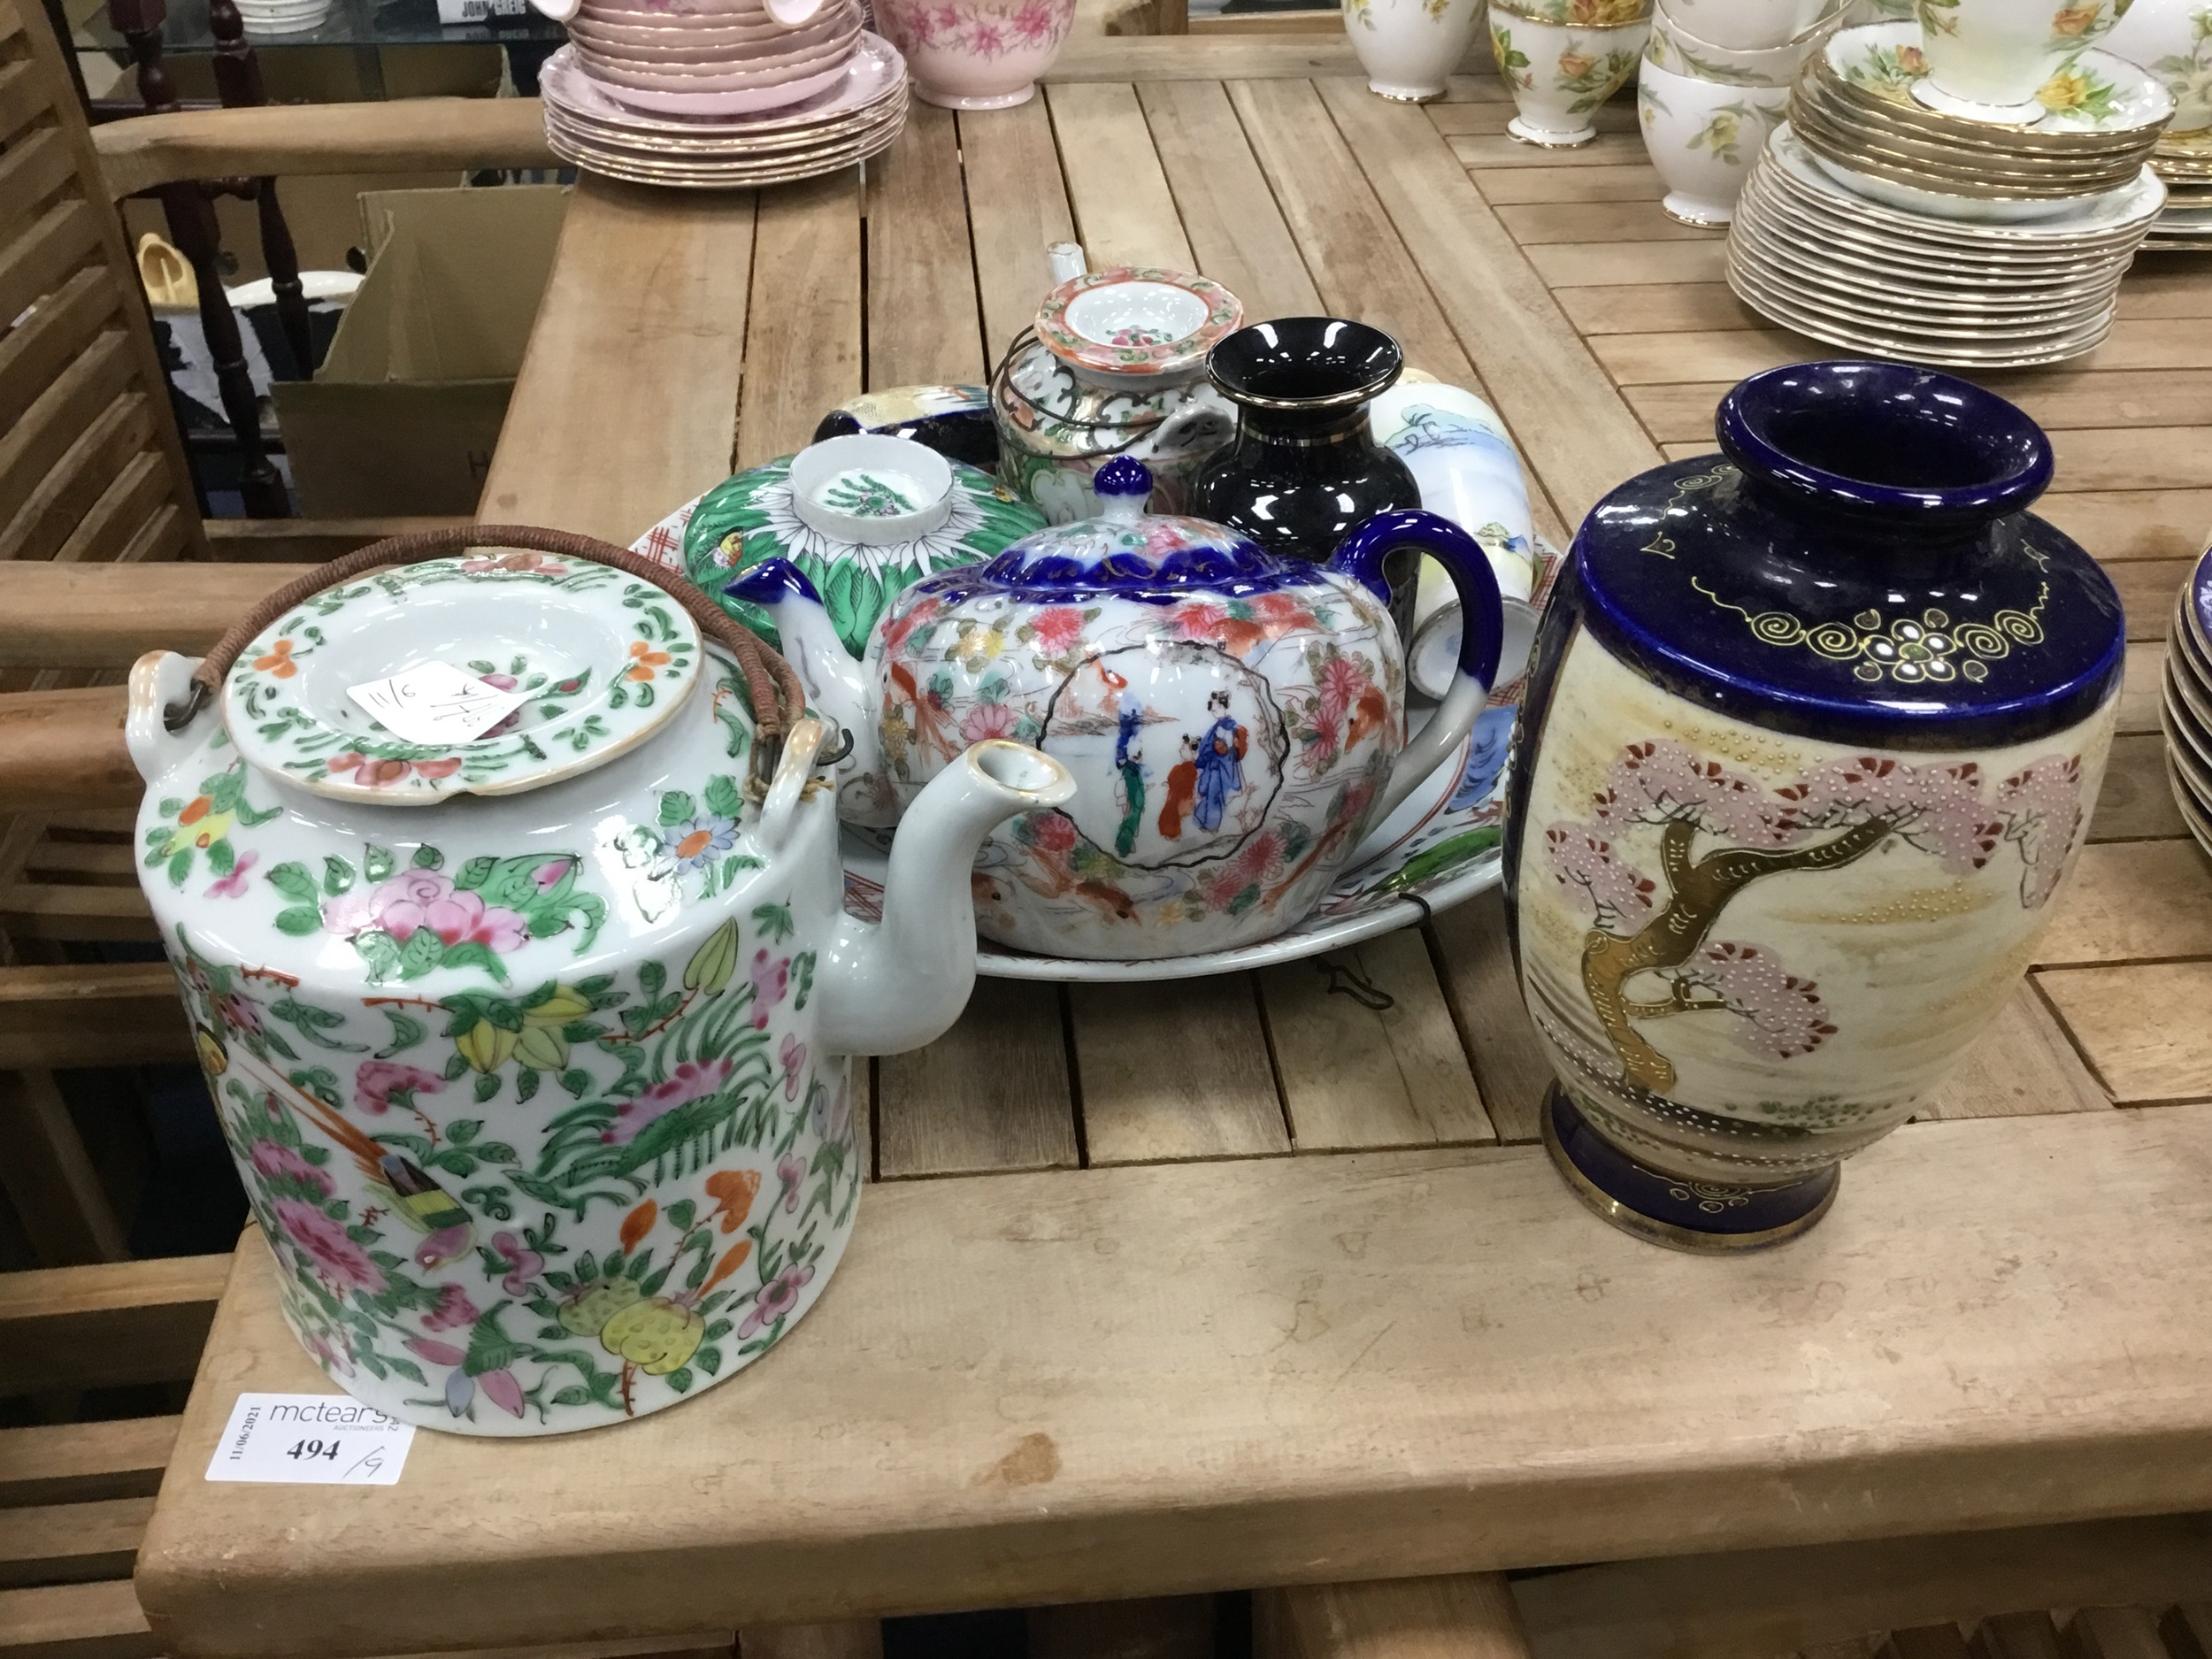 A CHINESE FAMILLE ROSE TEA POT, ALONG WITH OTHER CHINESE CERAMICS